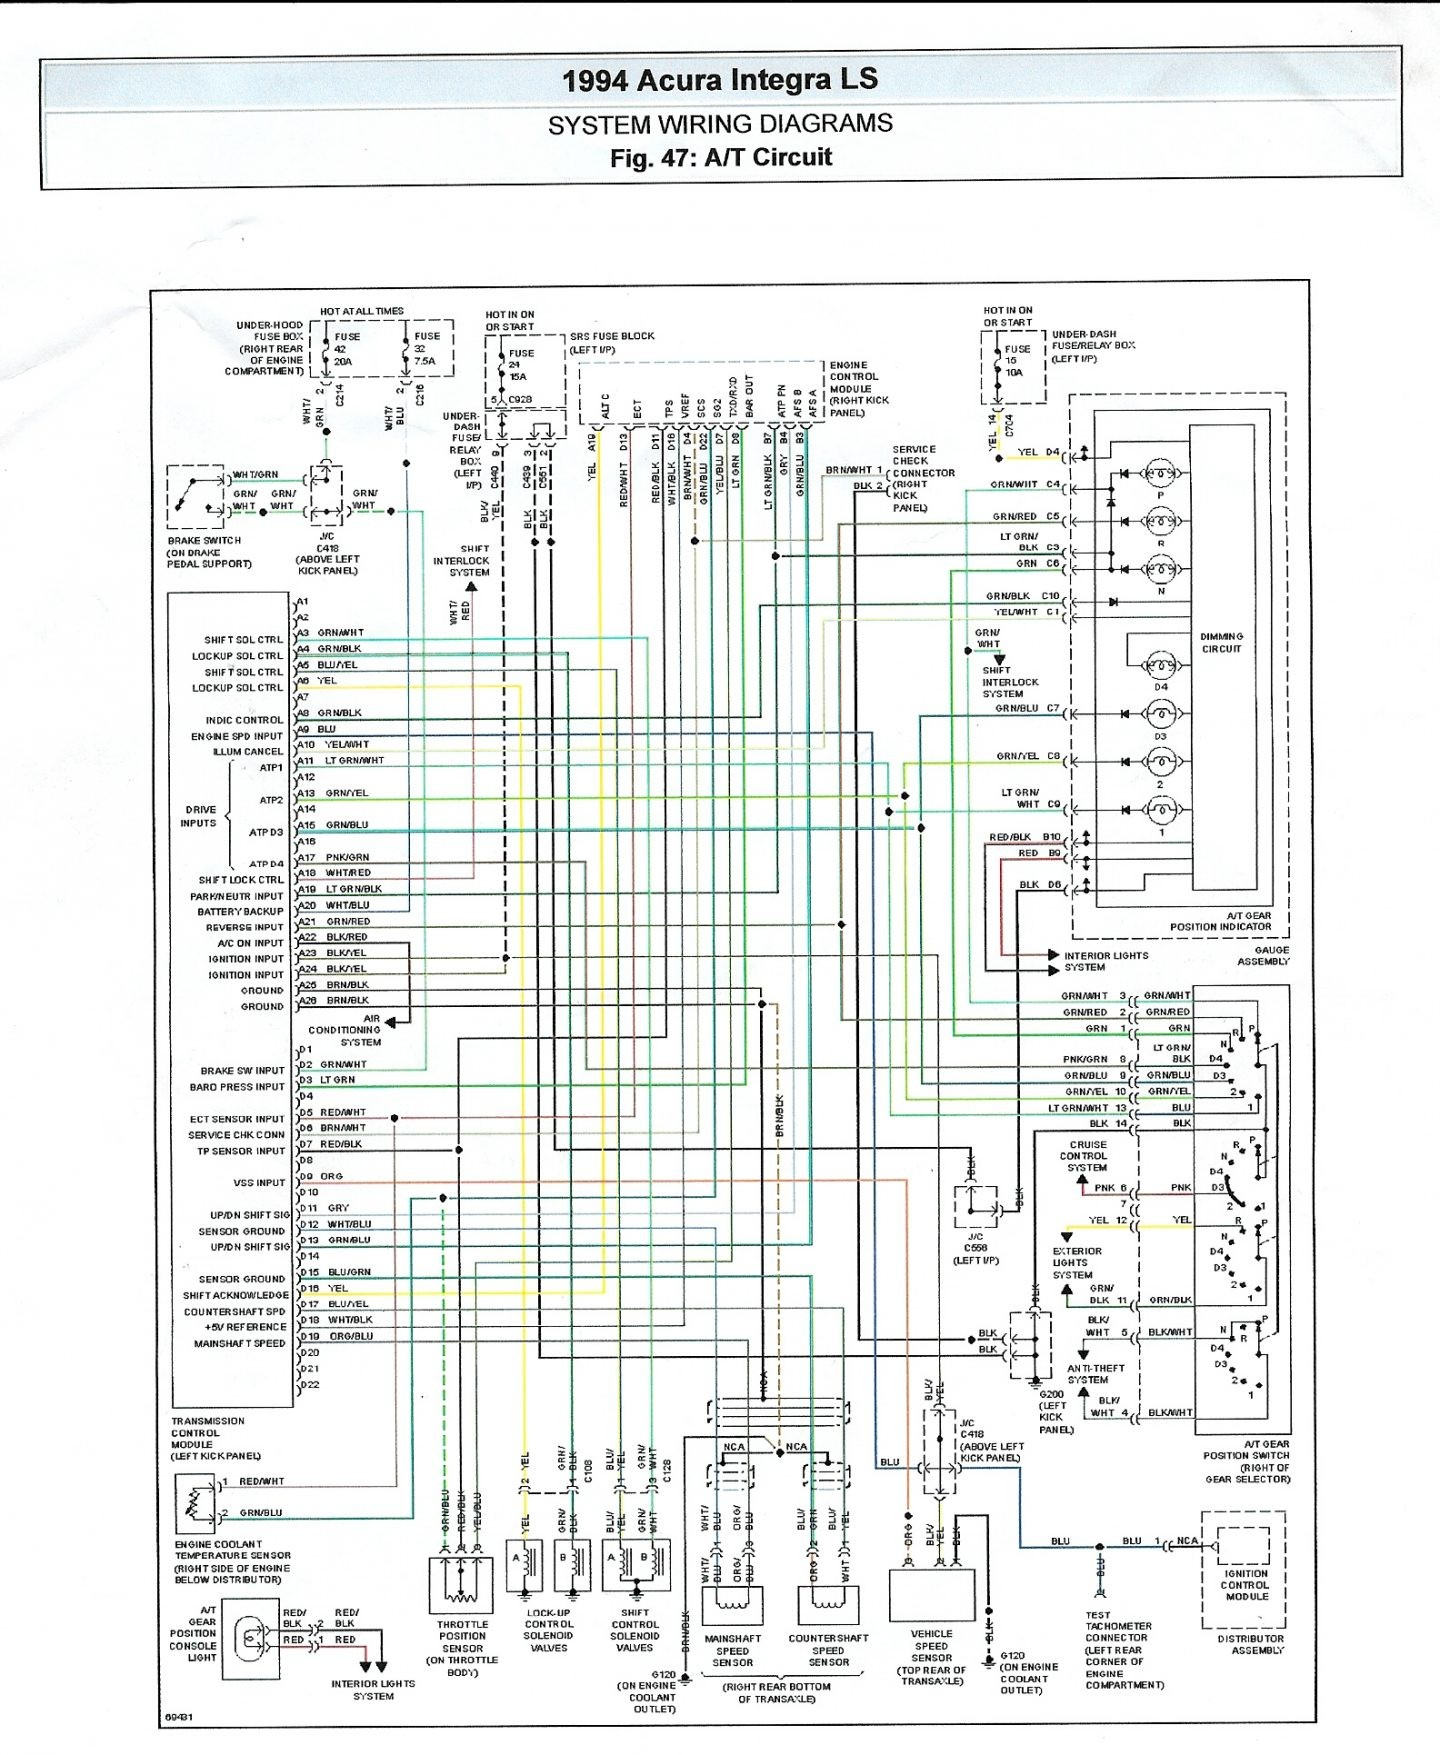 95 Honda Civic Engine Diagram Vw Transporter Wiring Diagram 95 Honda Civic  Transmission Diagram Of 95